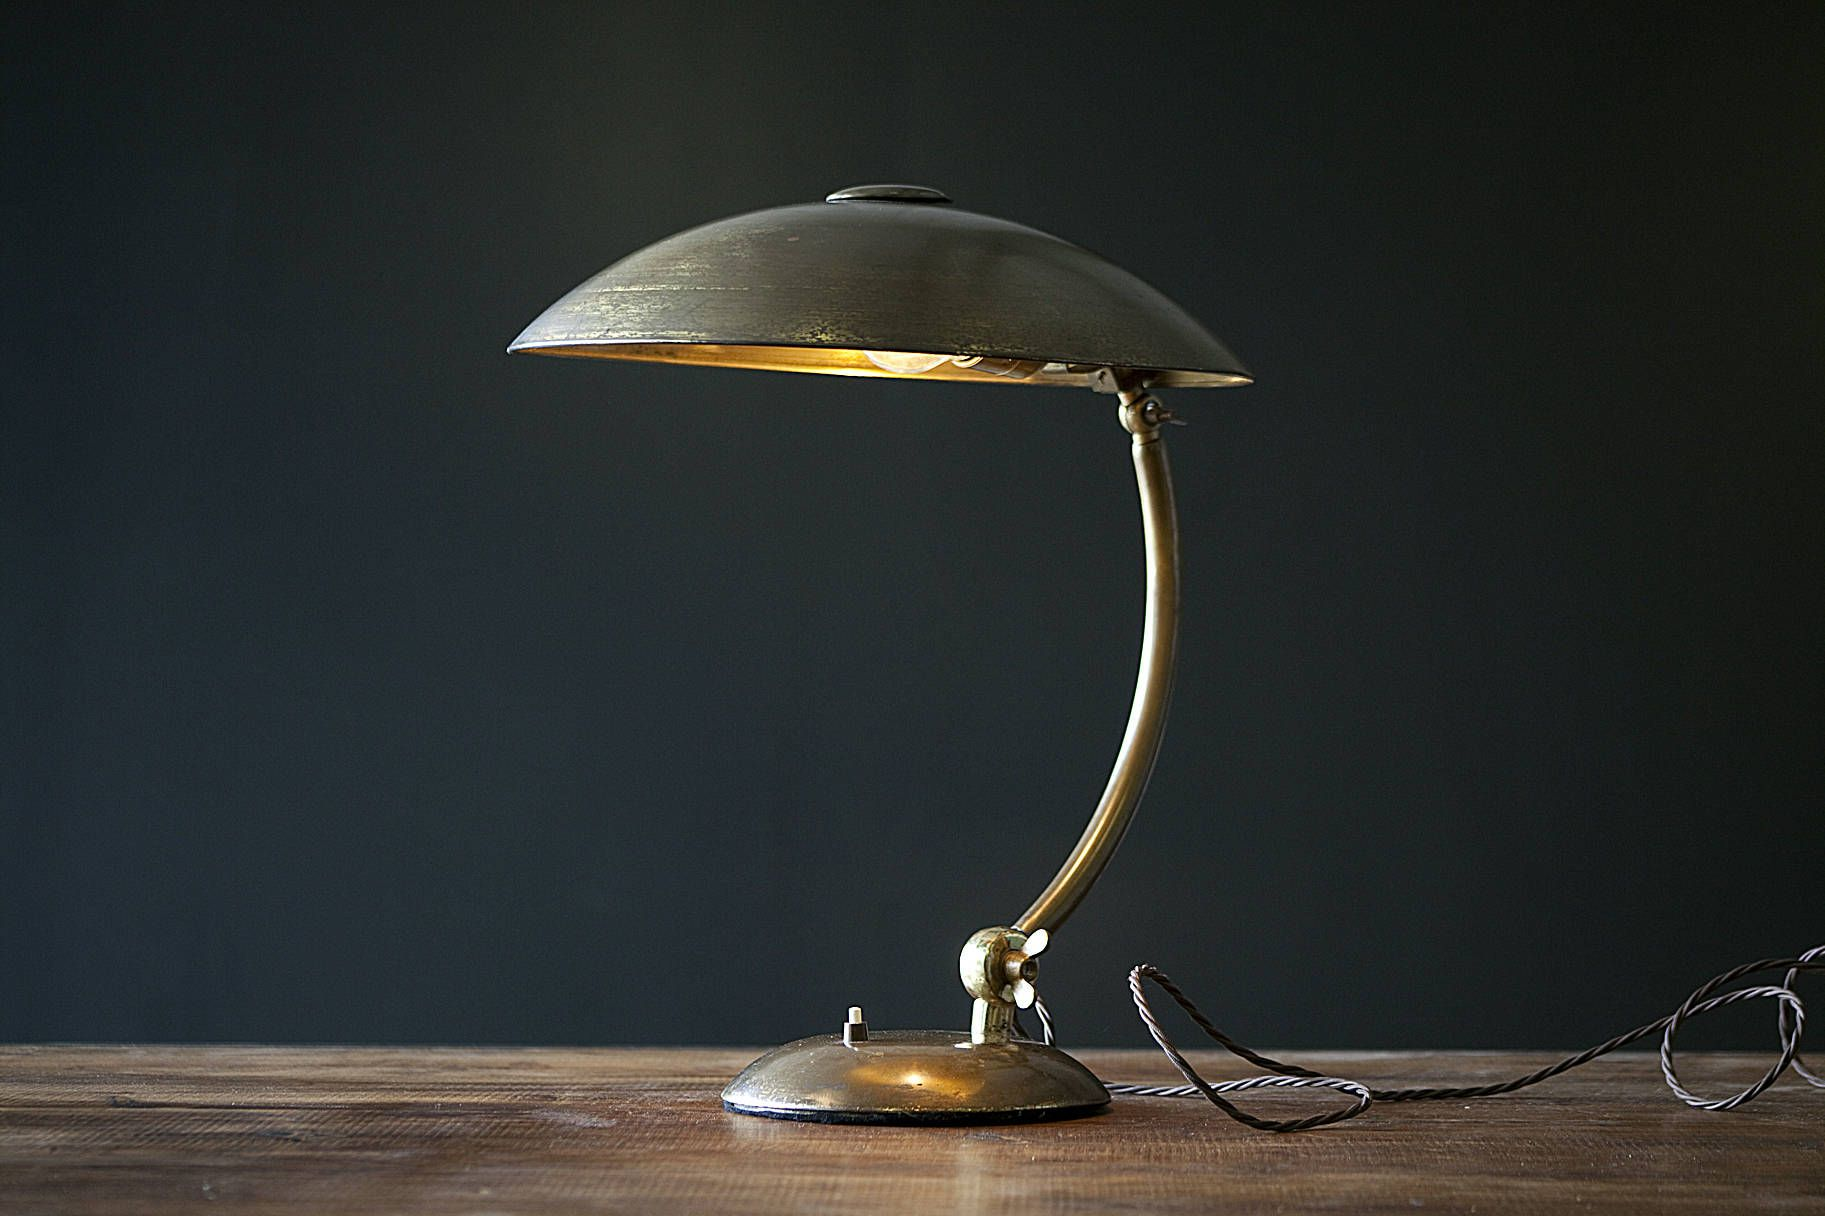 Beautiful vintage flying saucer desk lamp restored rewired and beautiful vintage flying saucer desk lamp restored rewired and pat keyboard keysfo Image collections